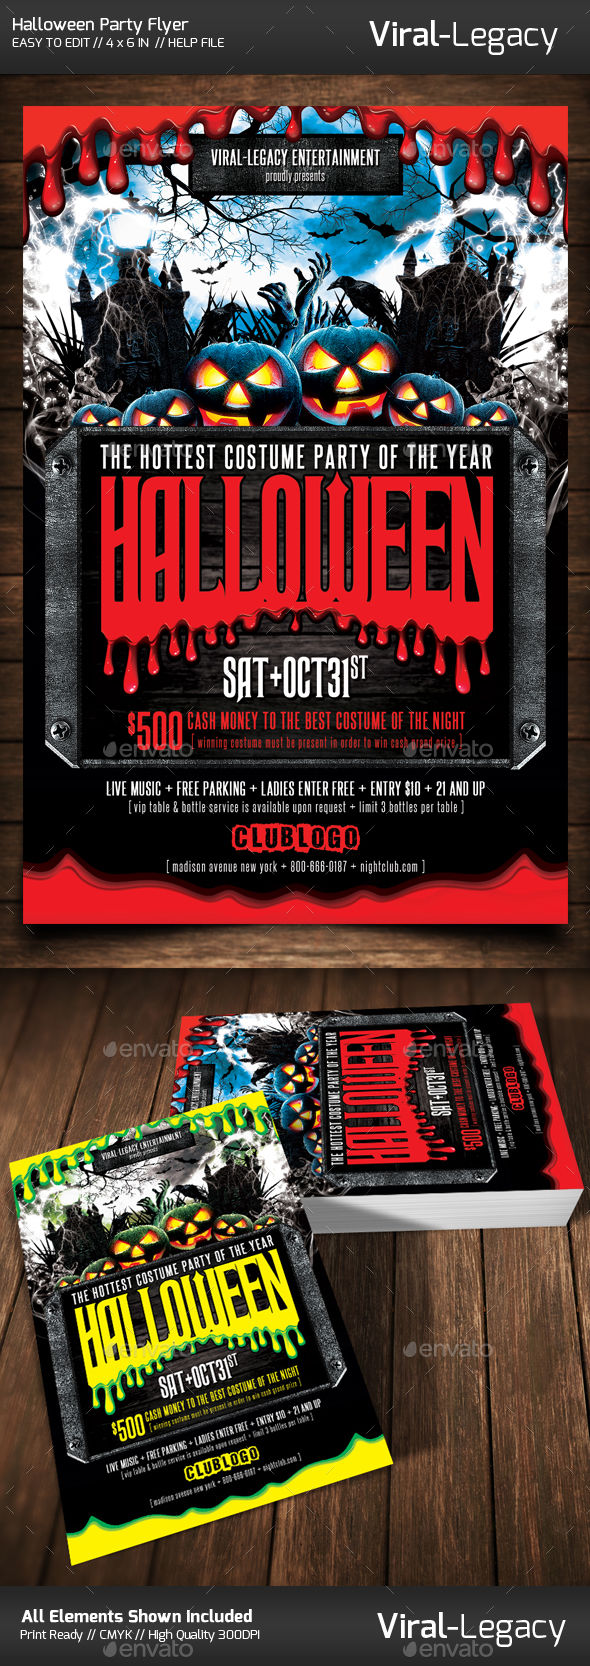 Halloween Party Flyer by Viral-Legacy (Halloween party flyer)